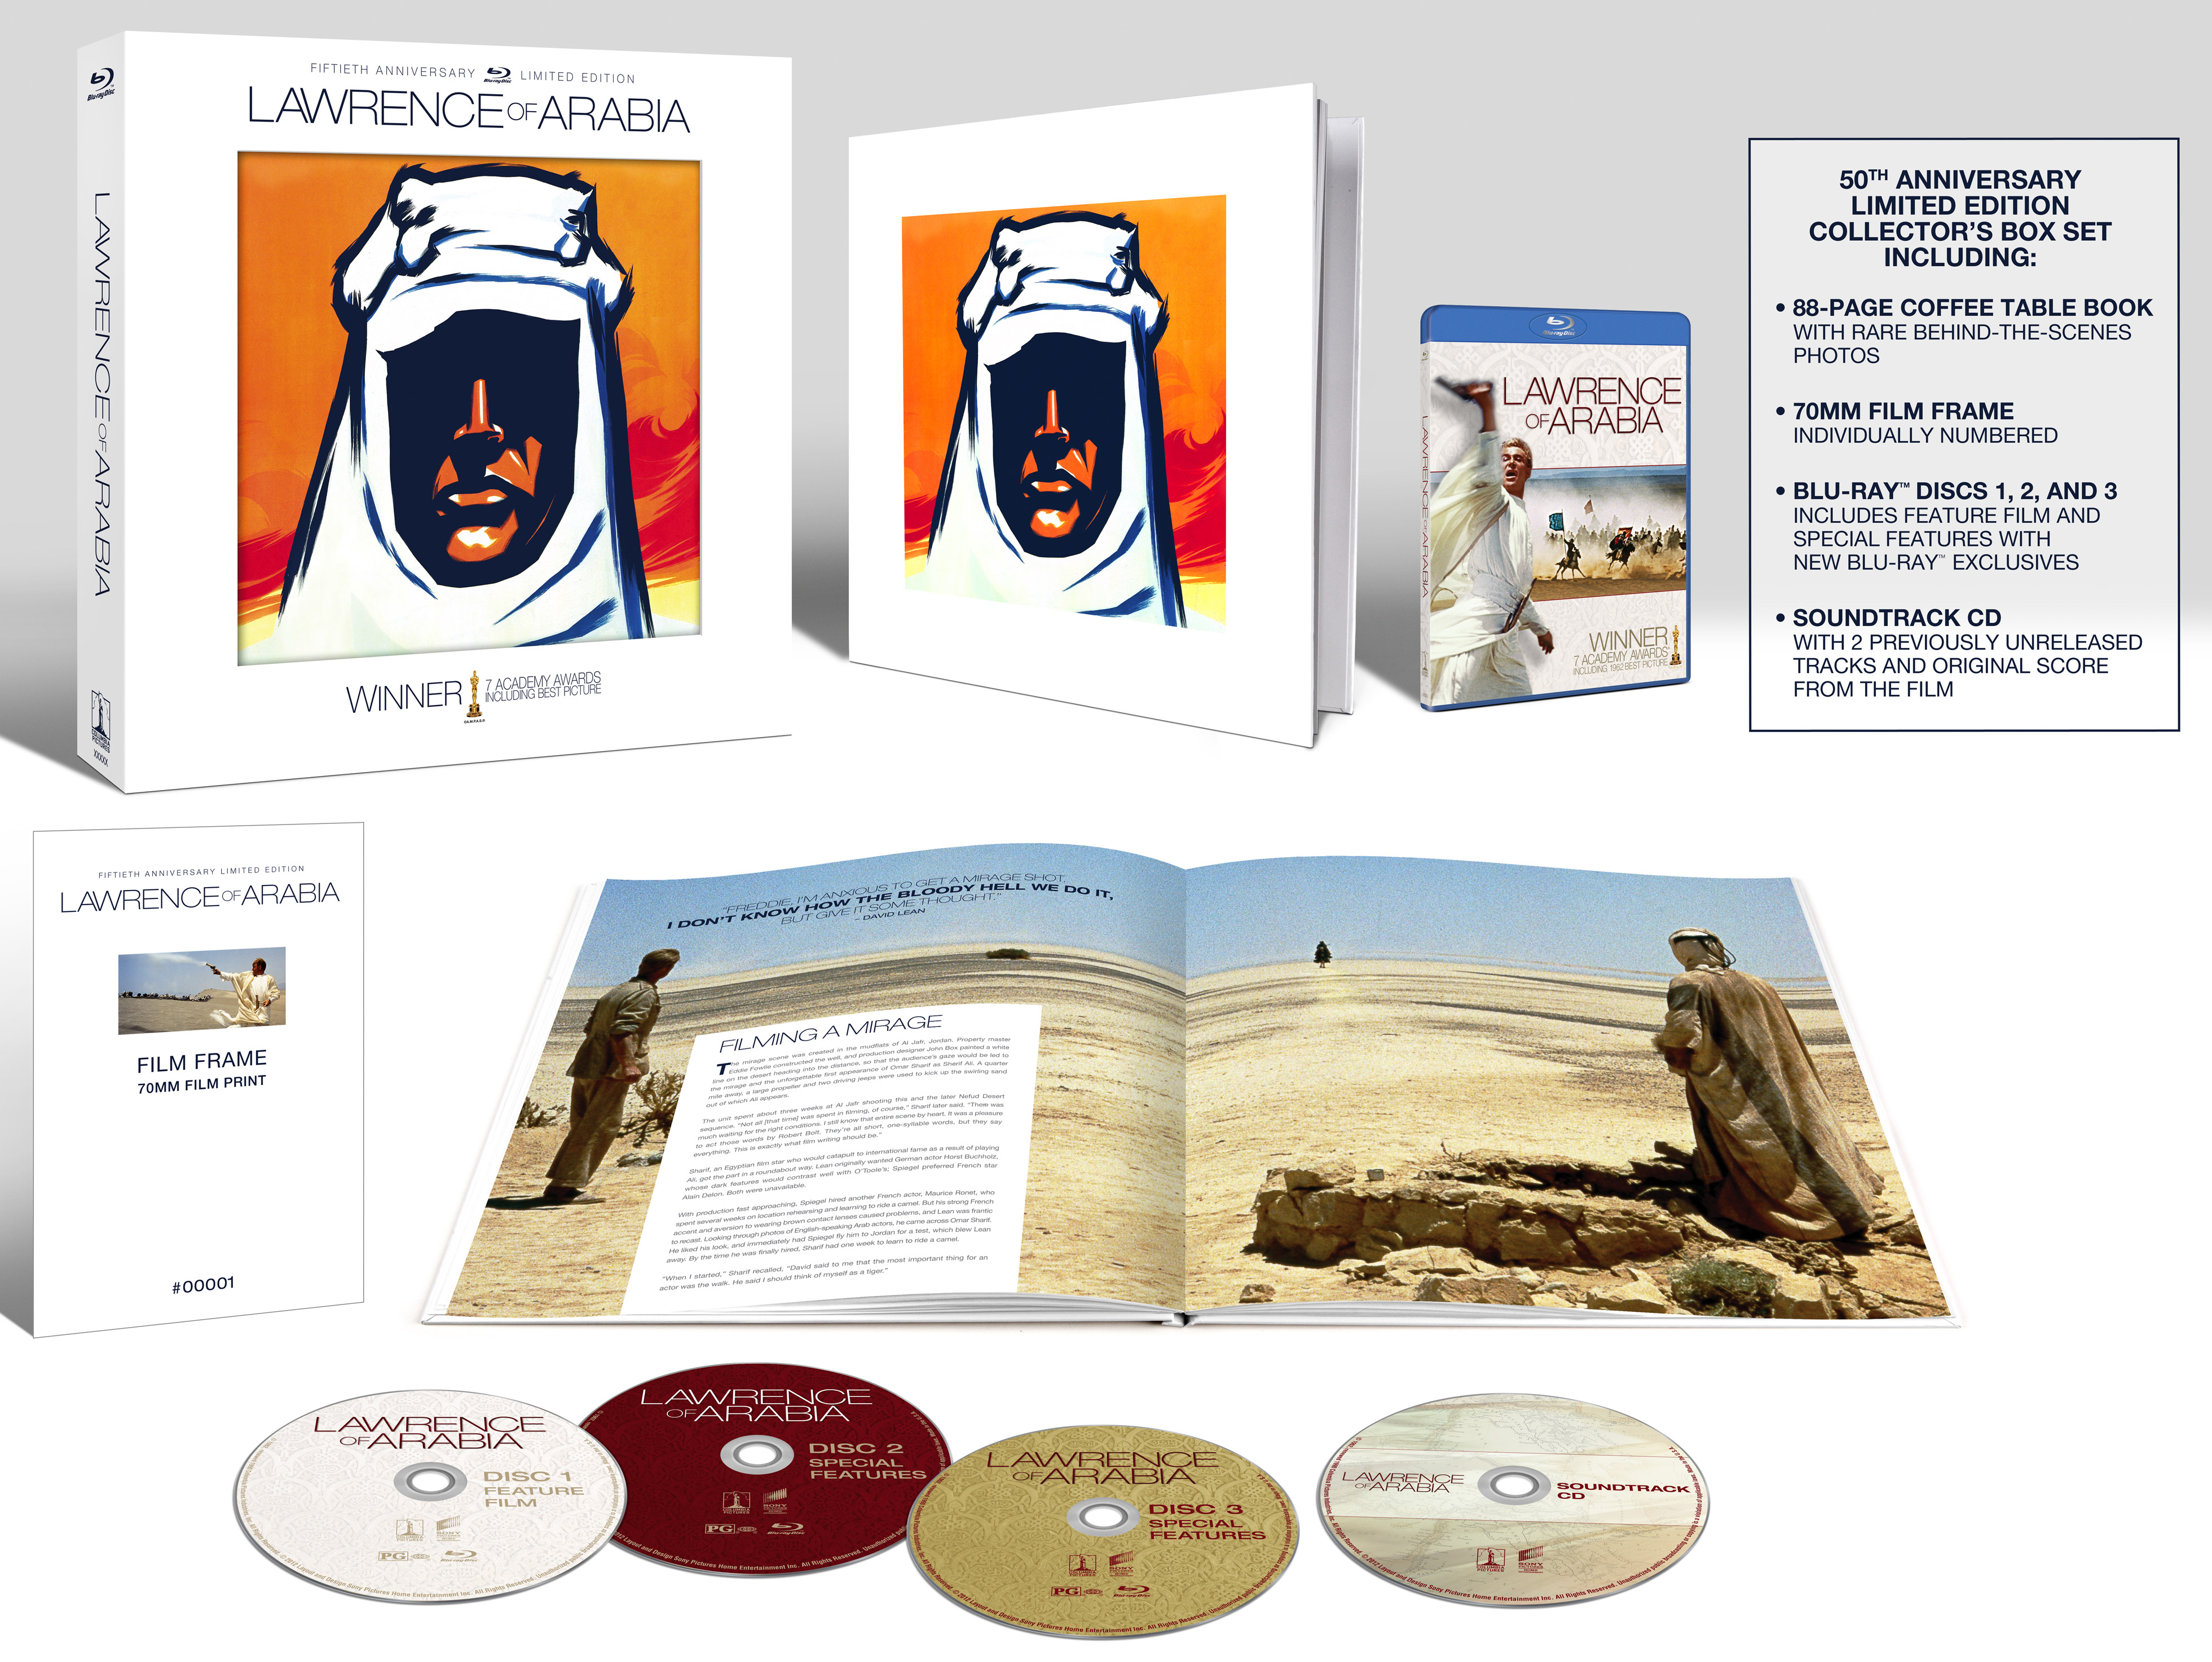 Lawrence Of Arabia 50th Anniversary Limited Collectors